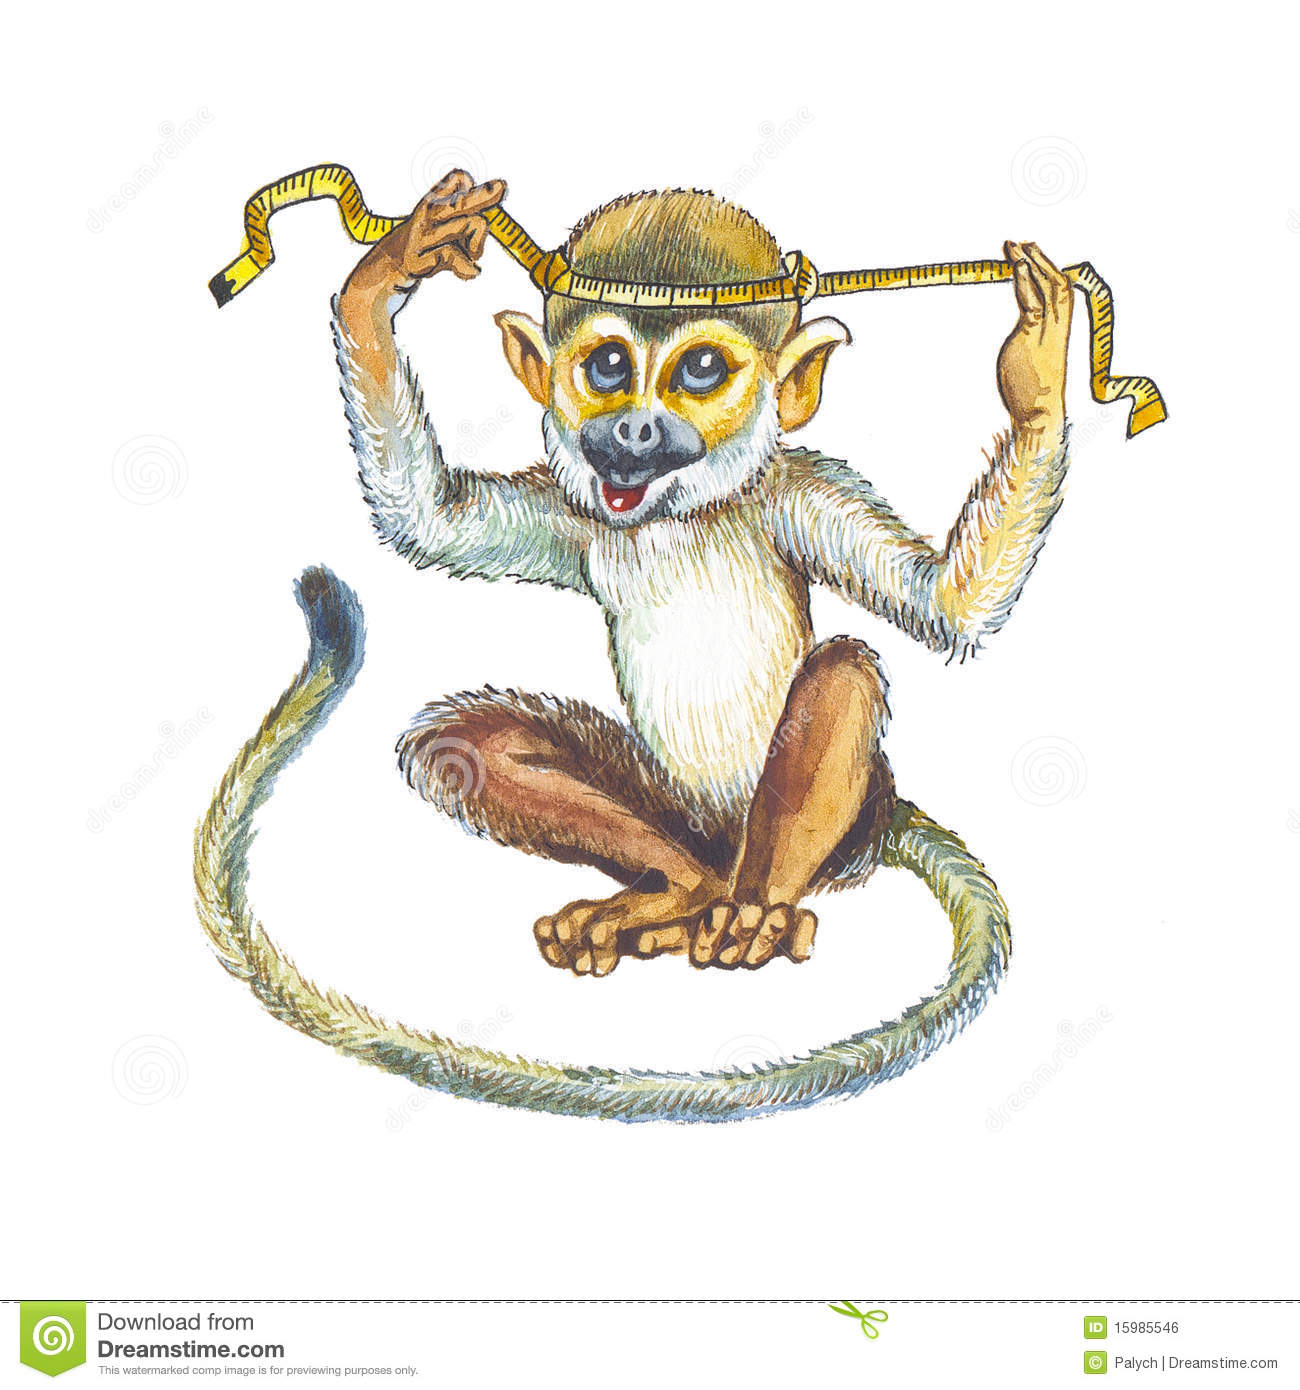 Squirrel Monkey clipart #10, Download drawings